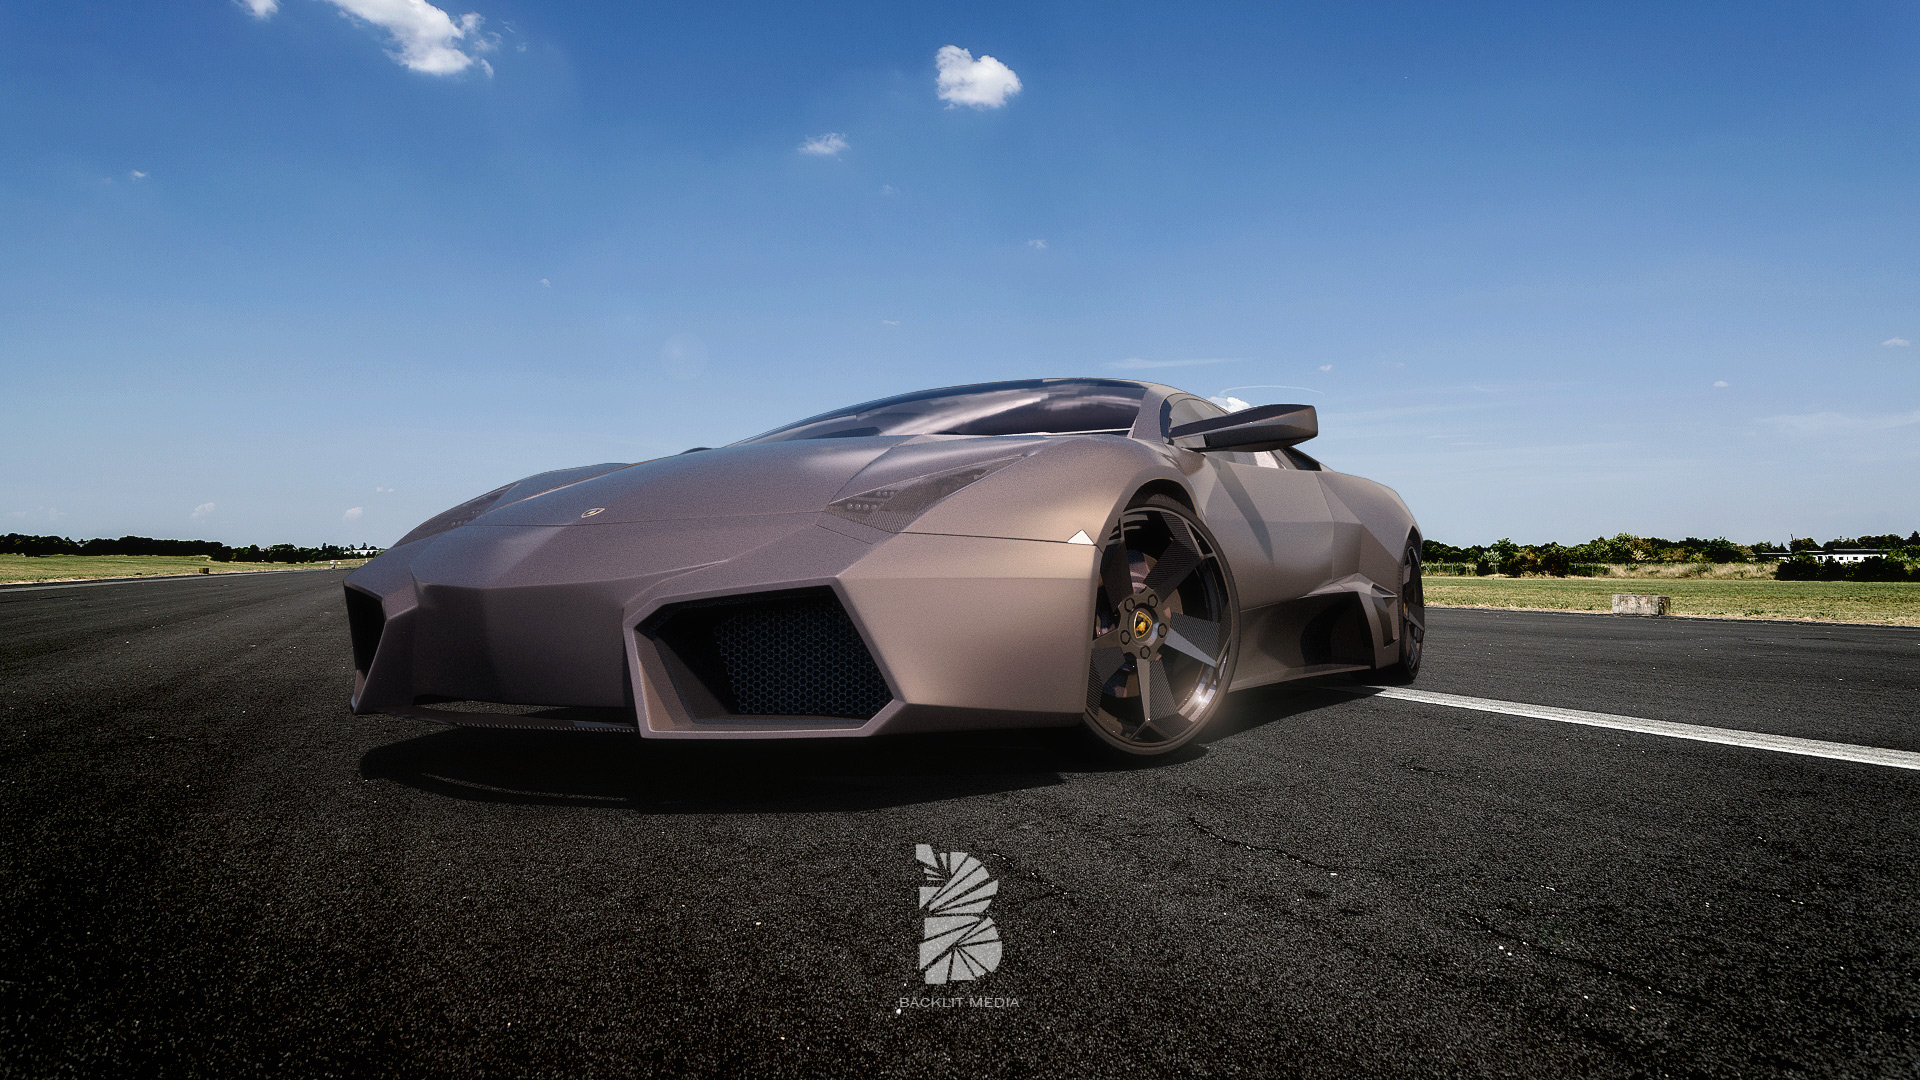 image of Lamborghini Reventon car